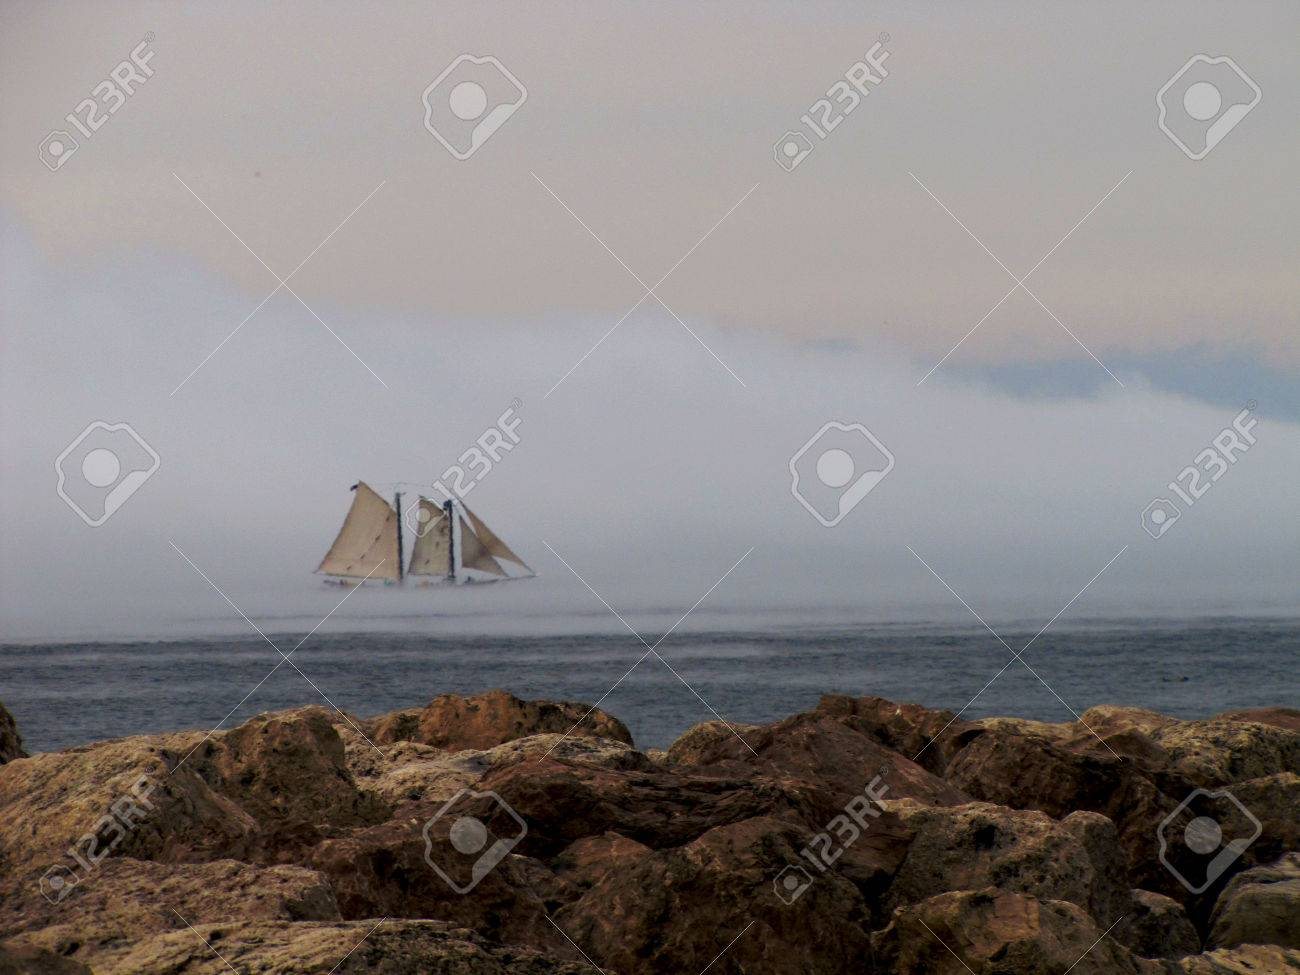 A majestic sailboat drifting through the mist on Traverse Bay - 34435121